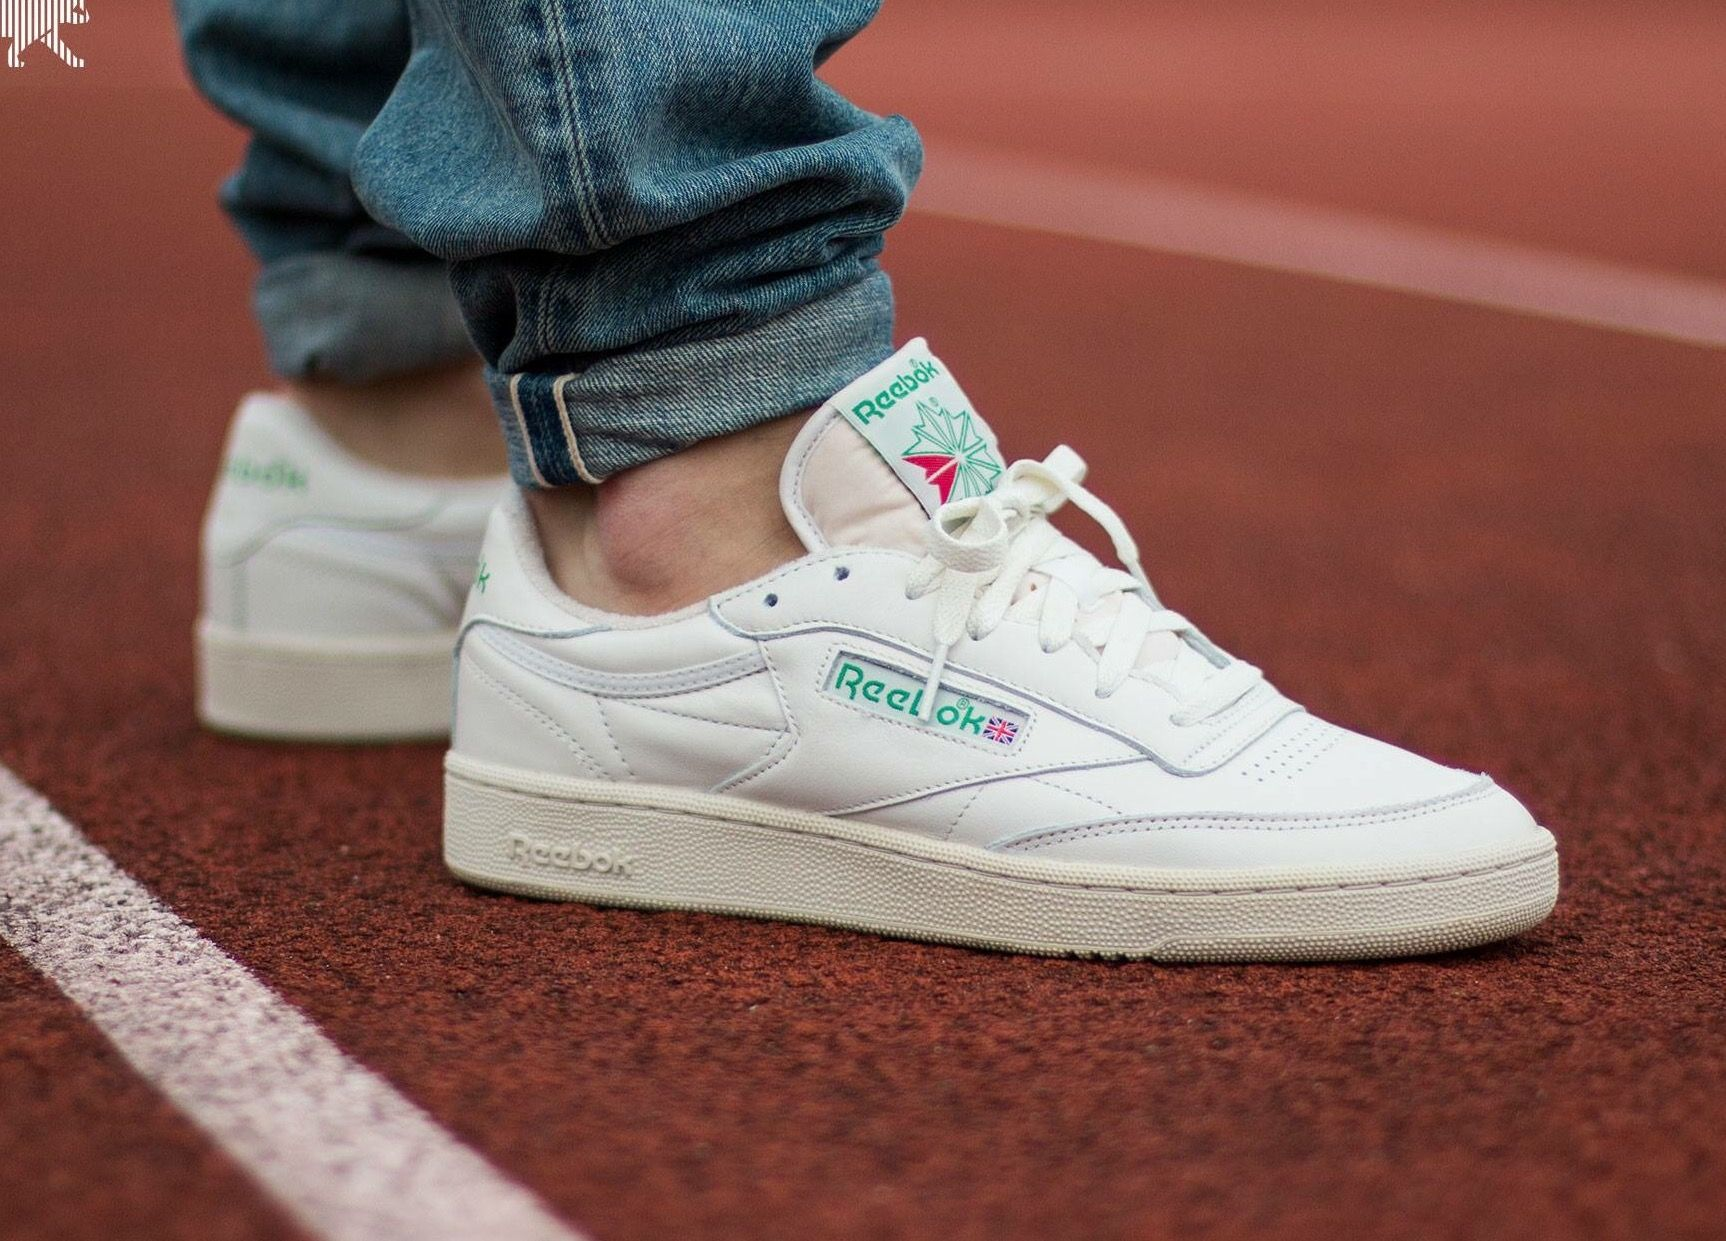 Reebok Club C 85 | Shoes in 2019 | Best white sneakers